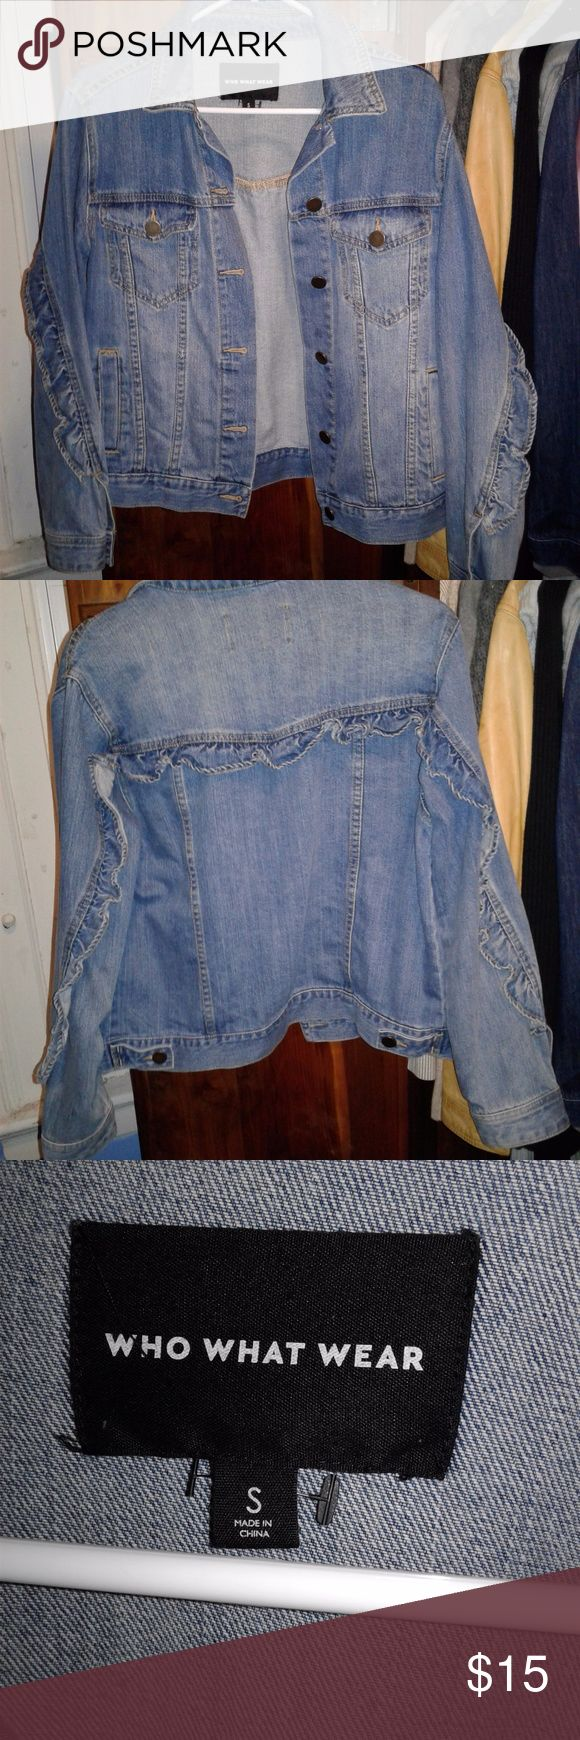 demin jacket it says size small  but i usually wear large, so this fits like a 10-12 or large. ruffles on the back and sleeves. new without tags Jackets & Coats Jean Jackets